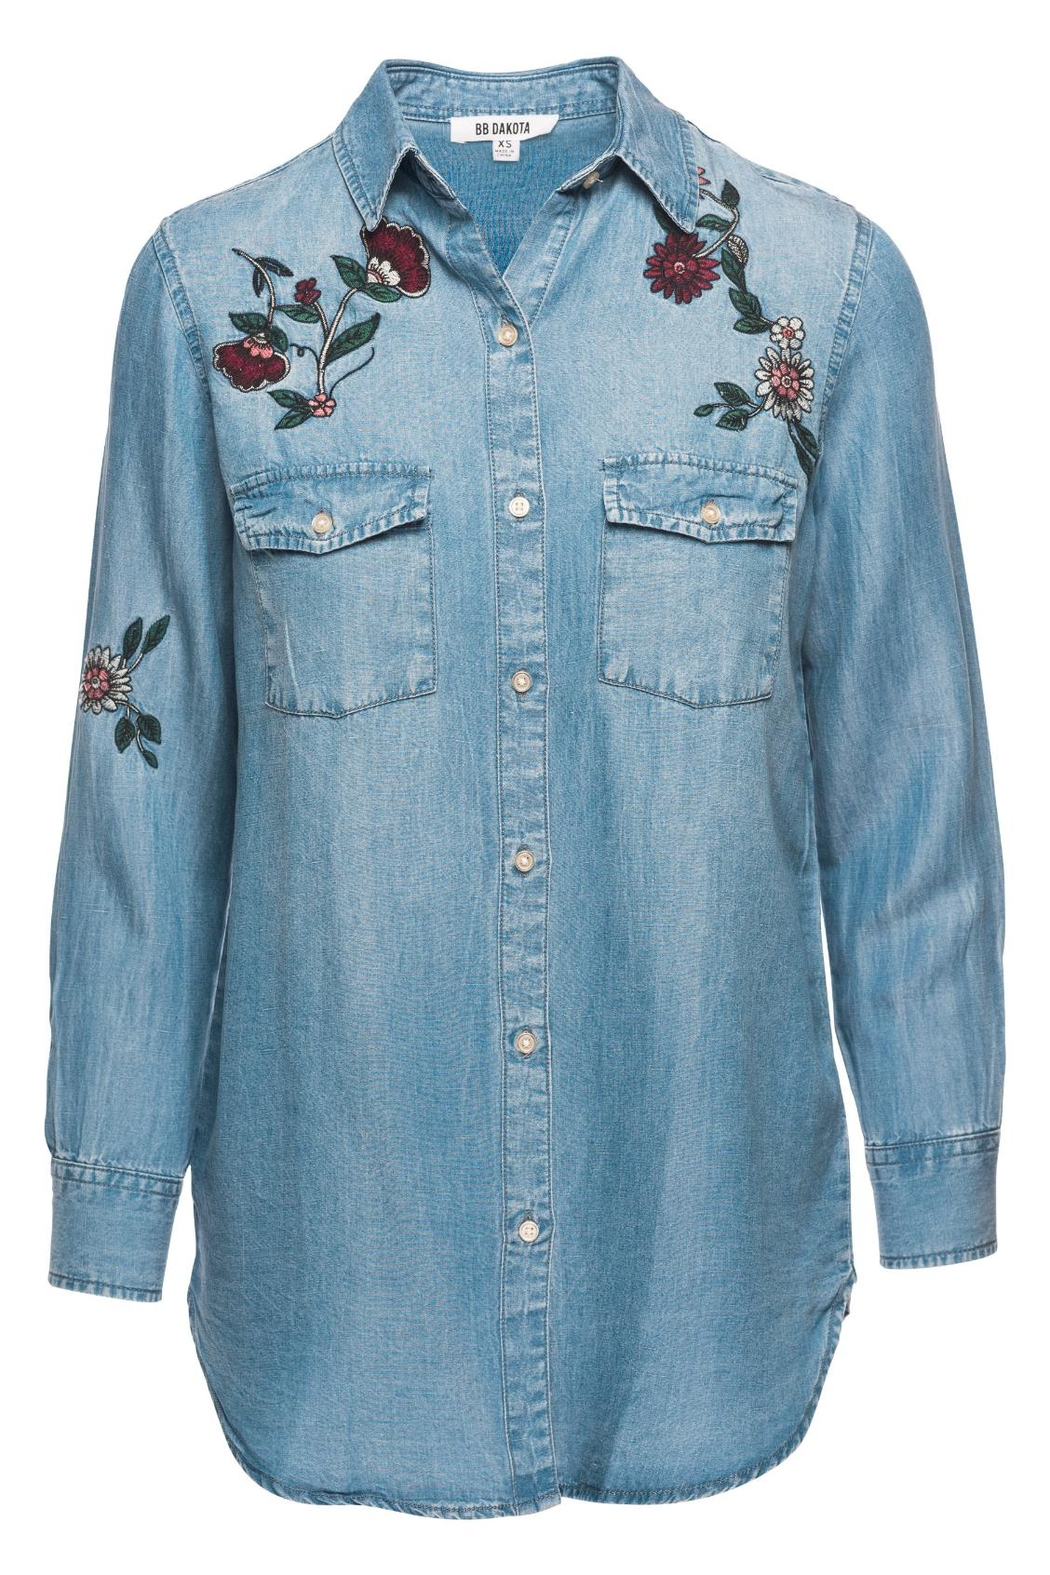 BB Dakota Trent Floral Embroidered Shirt - Main Image